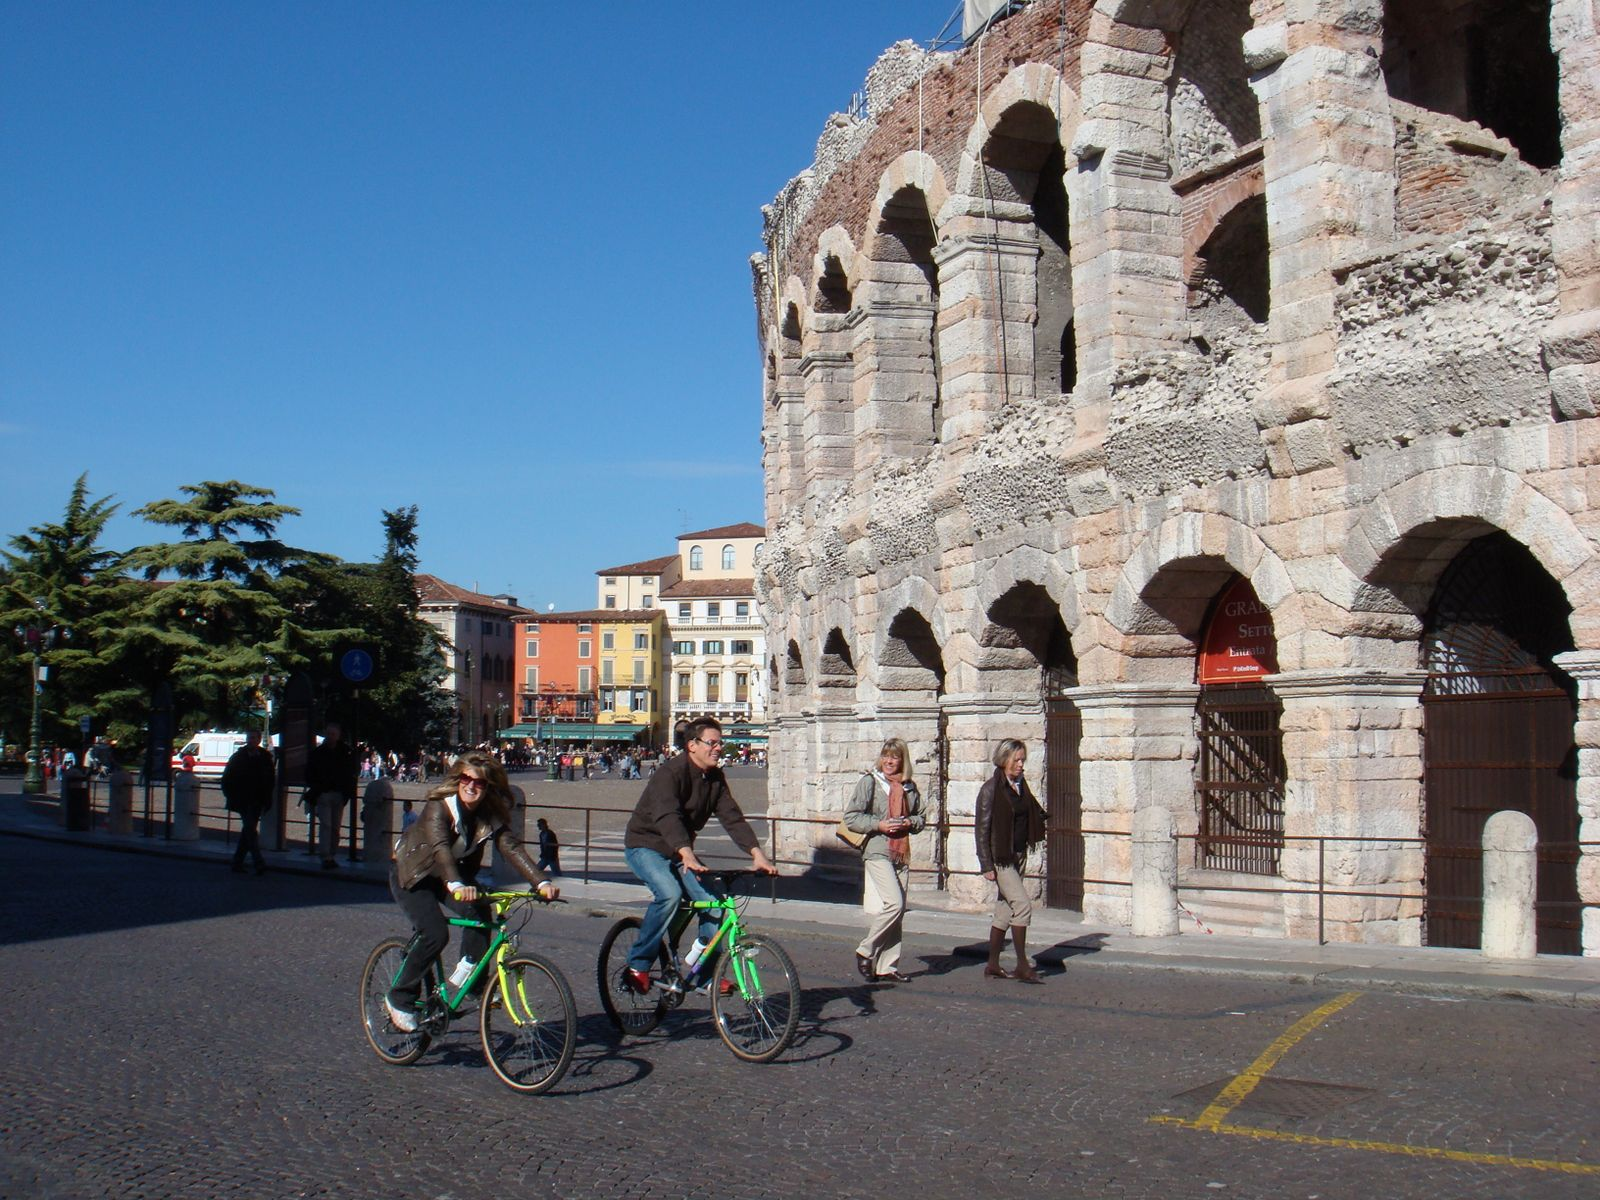 Cyclomundo bikers in front of an arena